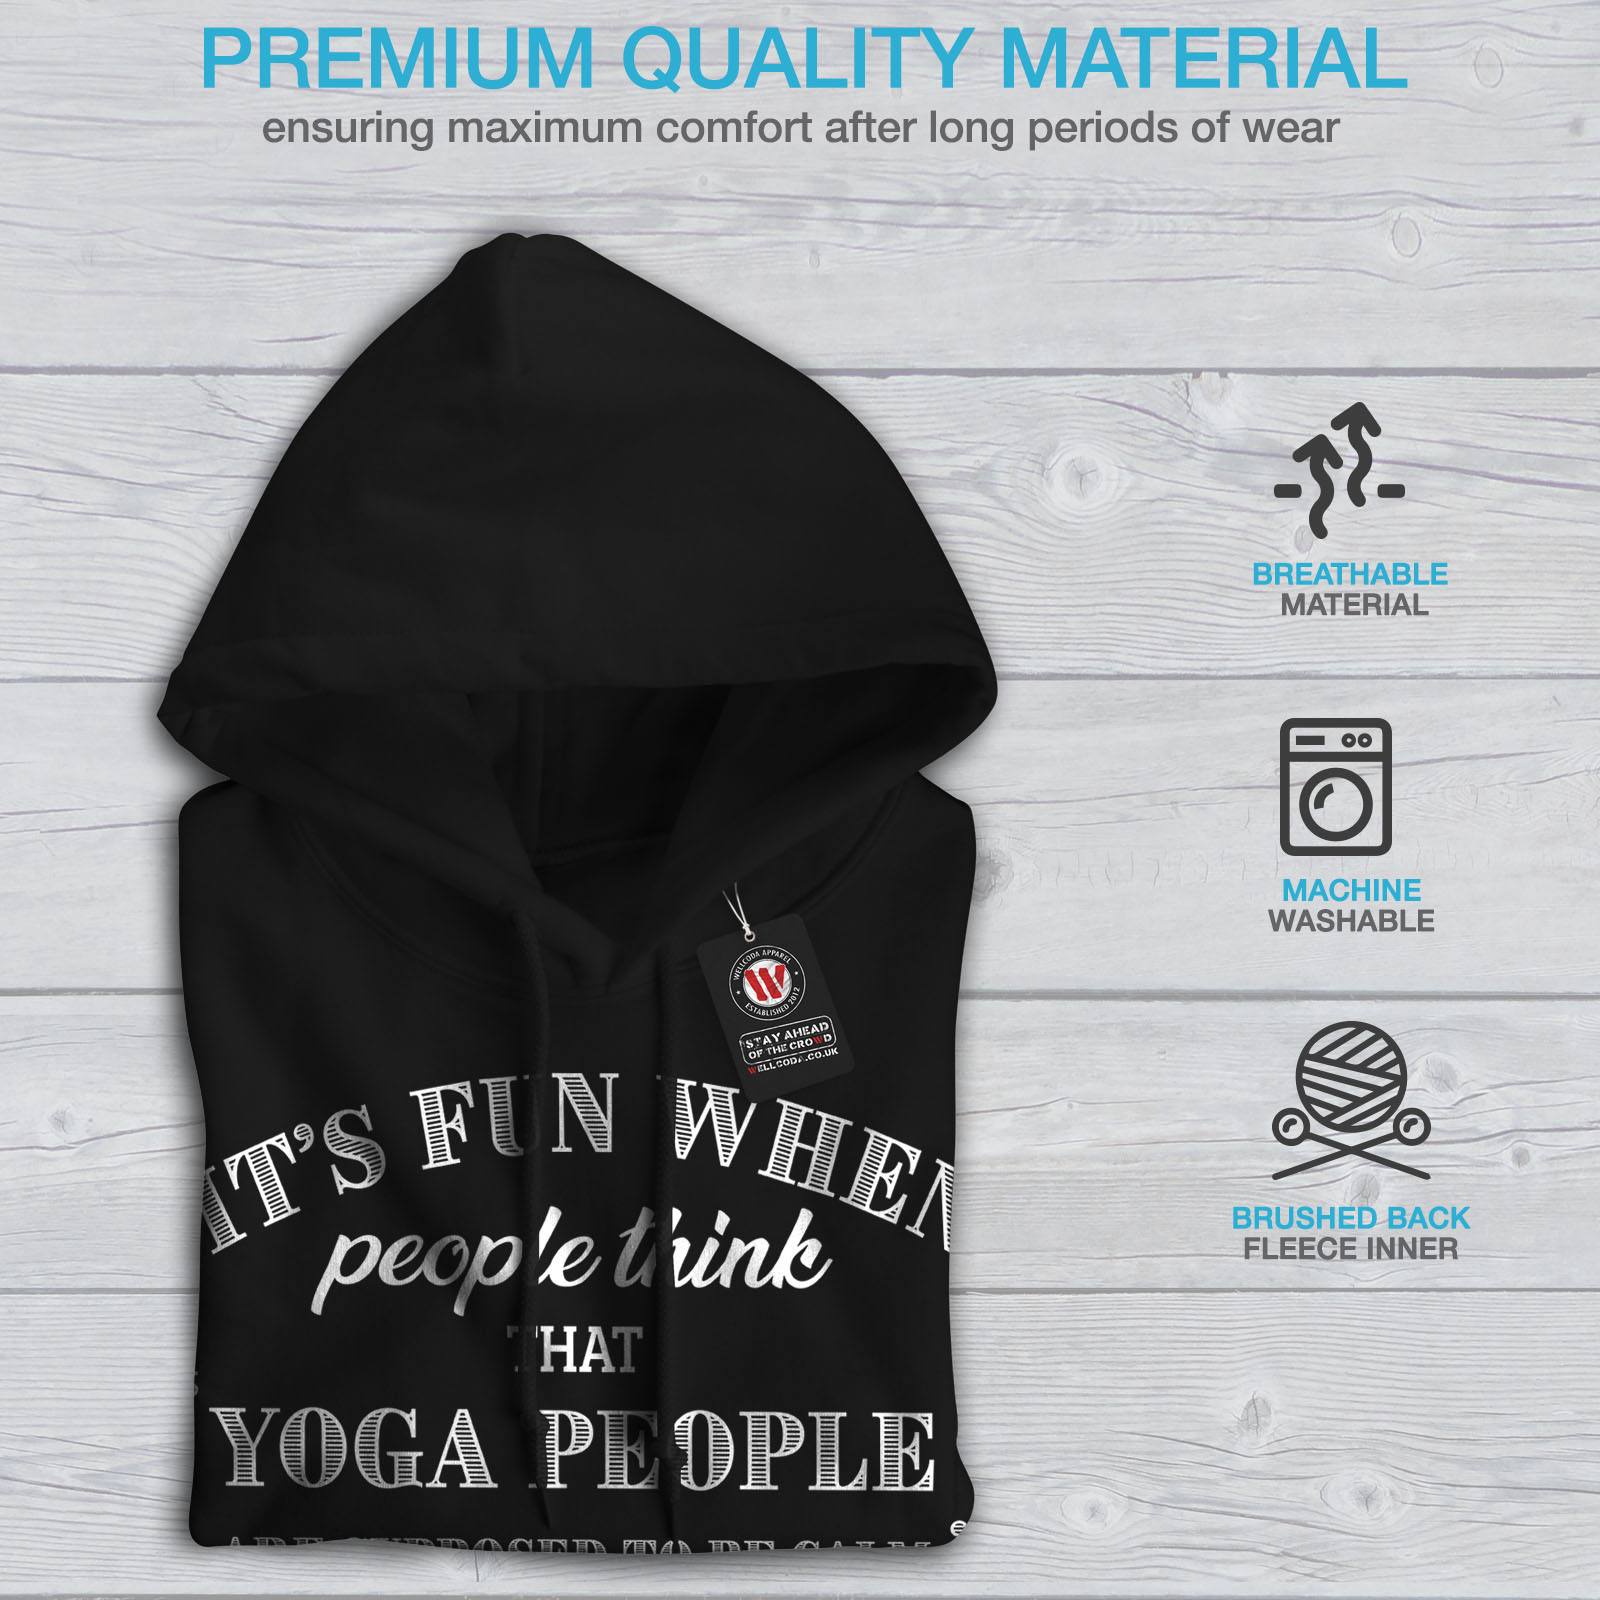 Calm Hooded Mindfulness Nuts Wellcoda Black Casual Sweatshirt Hoodie Mens Yoga xqXw7570I